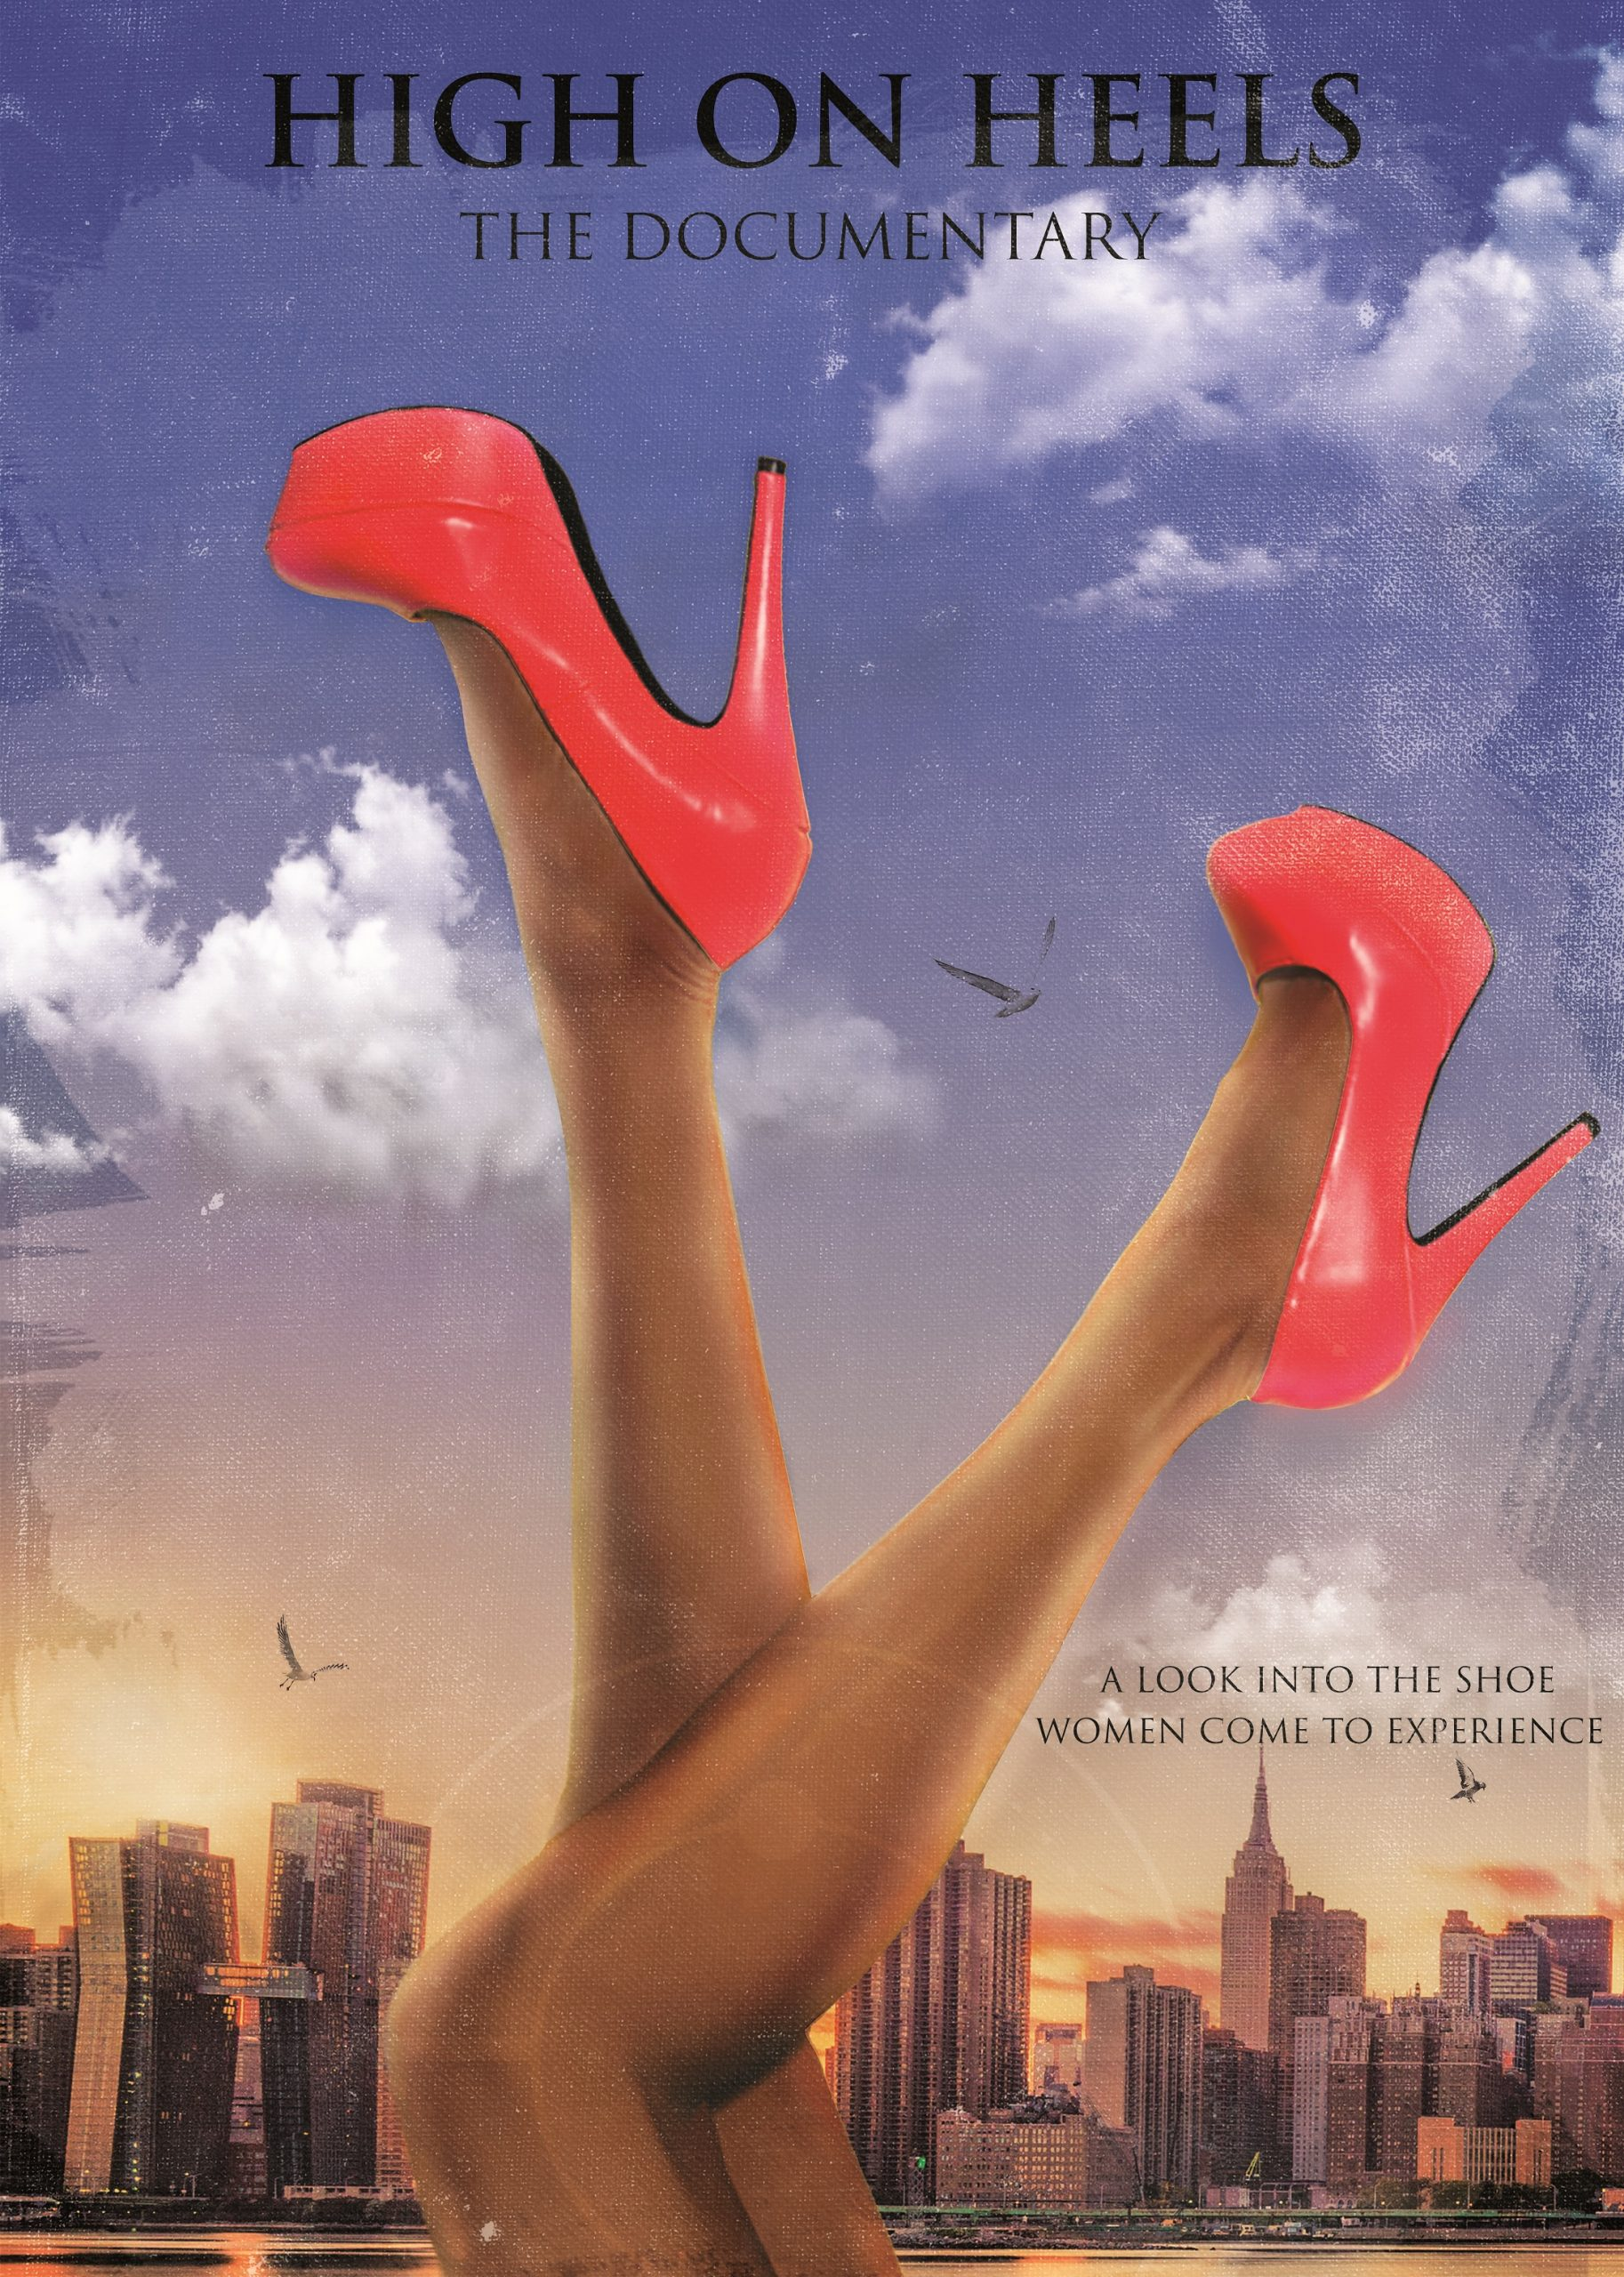 One On One With Film Maker Adelin Gasana, 'High On Heels'